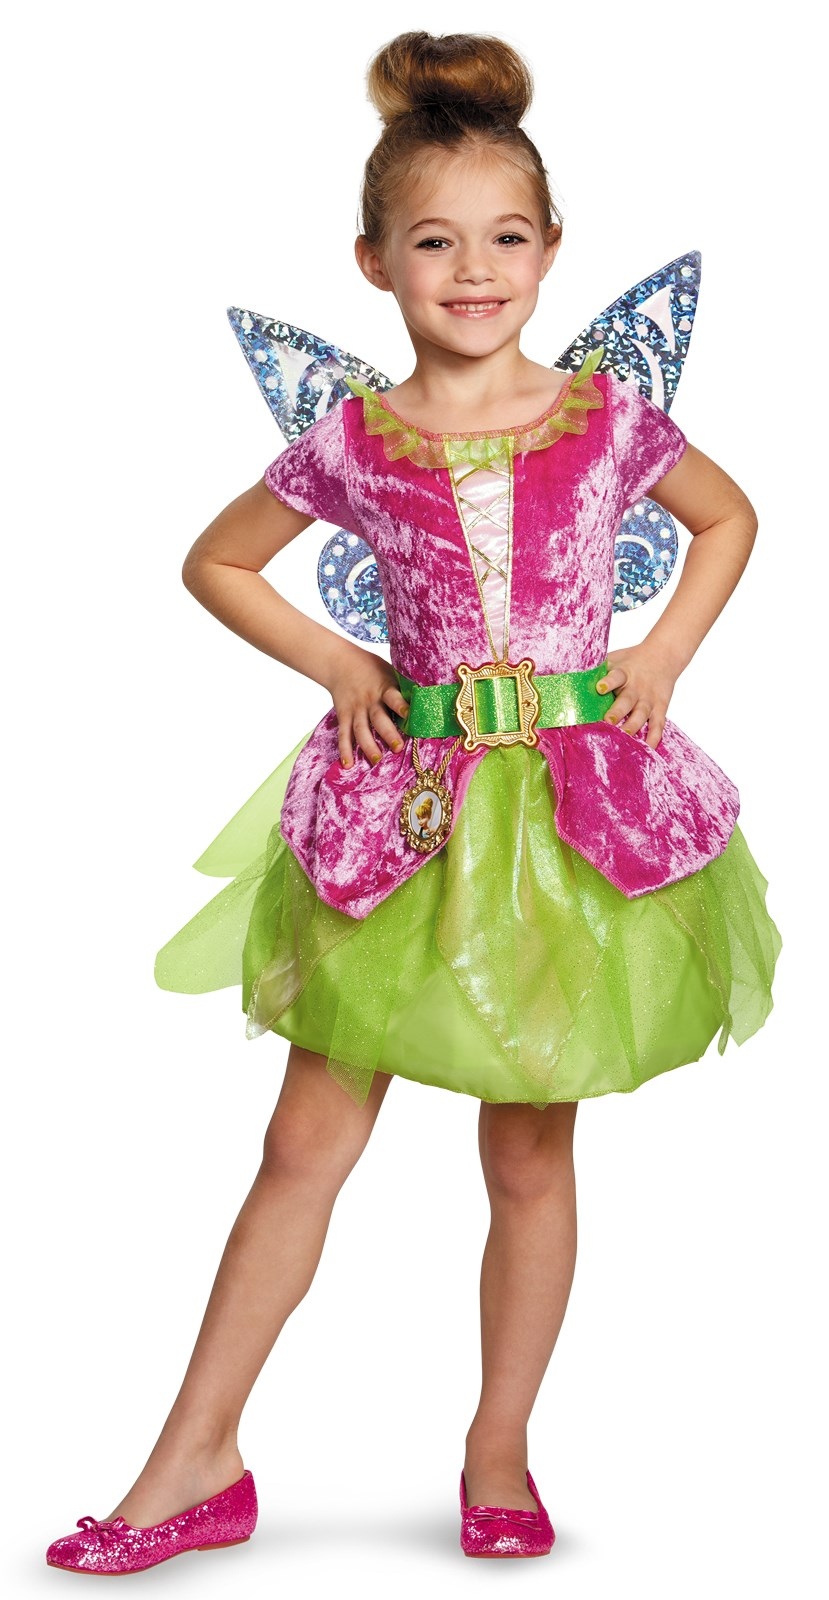 Tinker Bell and The Pirate Fairy - Pirate Tink Girls Costume 4-6